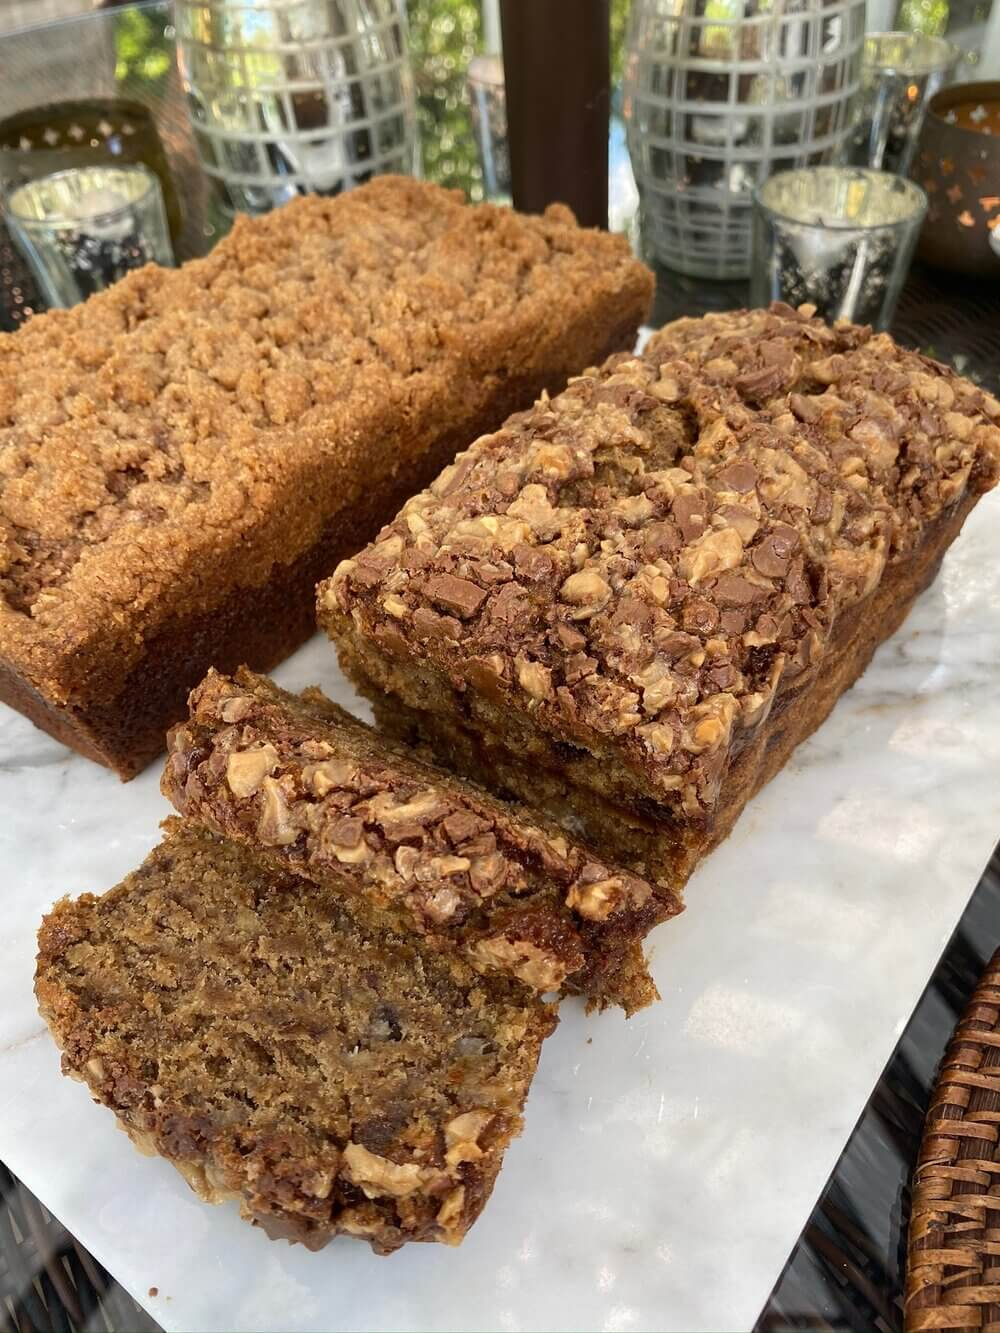 Shoutout Margot Savin for transforming our original banana bread mix into two different custom loaves (a vegan toffee loaf & a cinnamon crumble loaf)